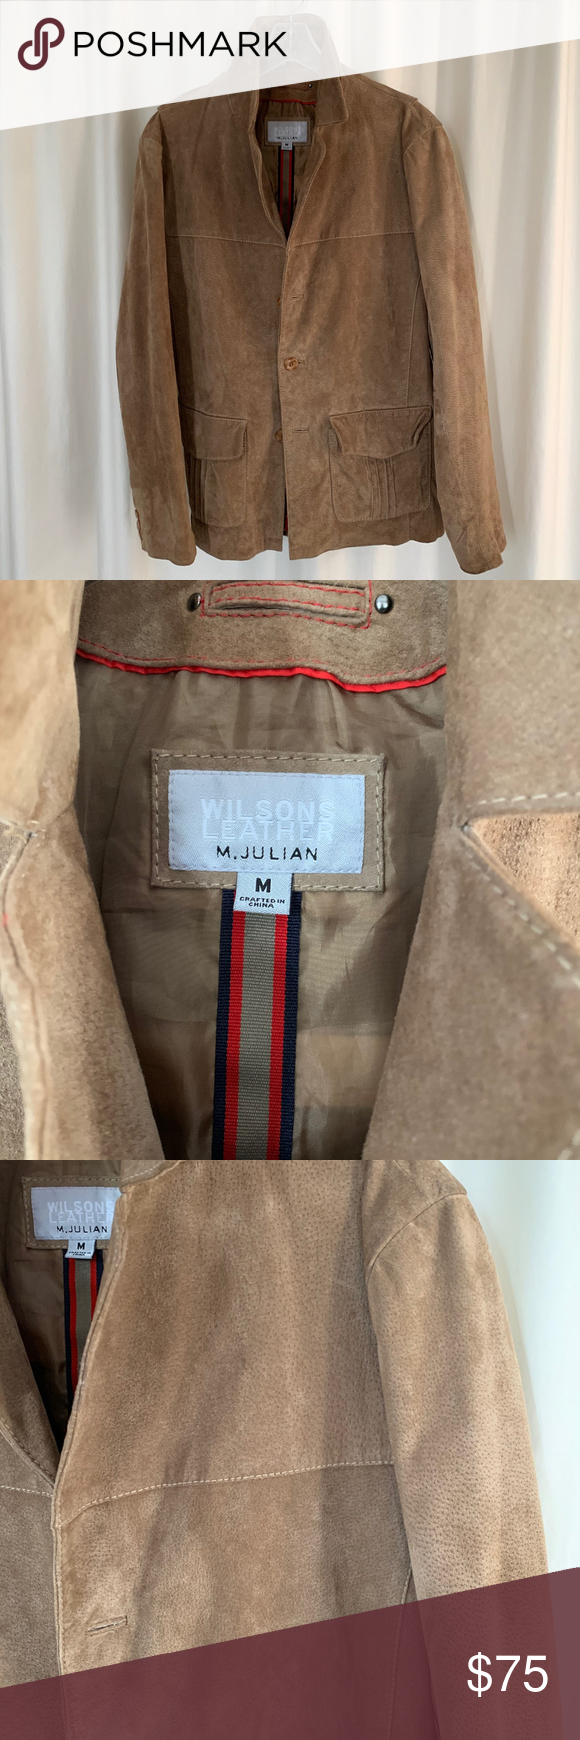 Wilsons Leather Men's Suede Jacket Medium (With images